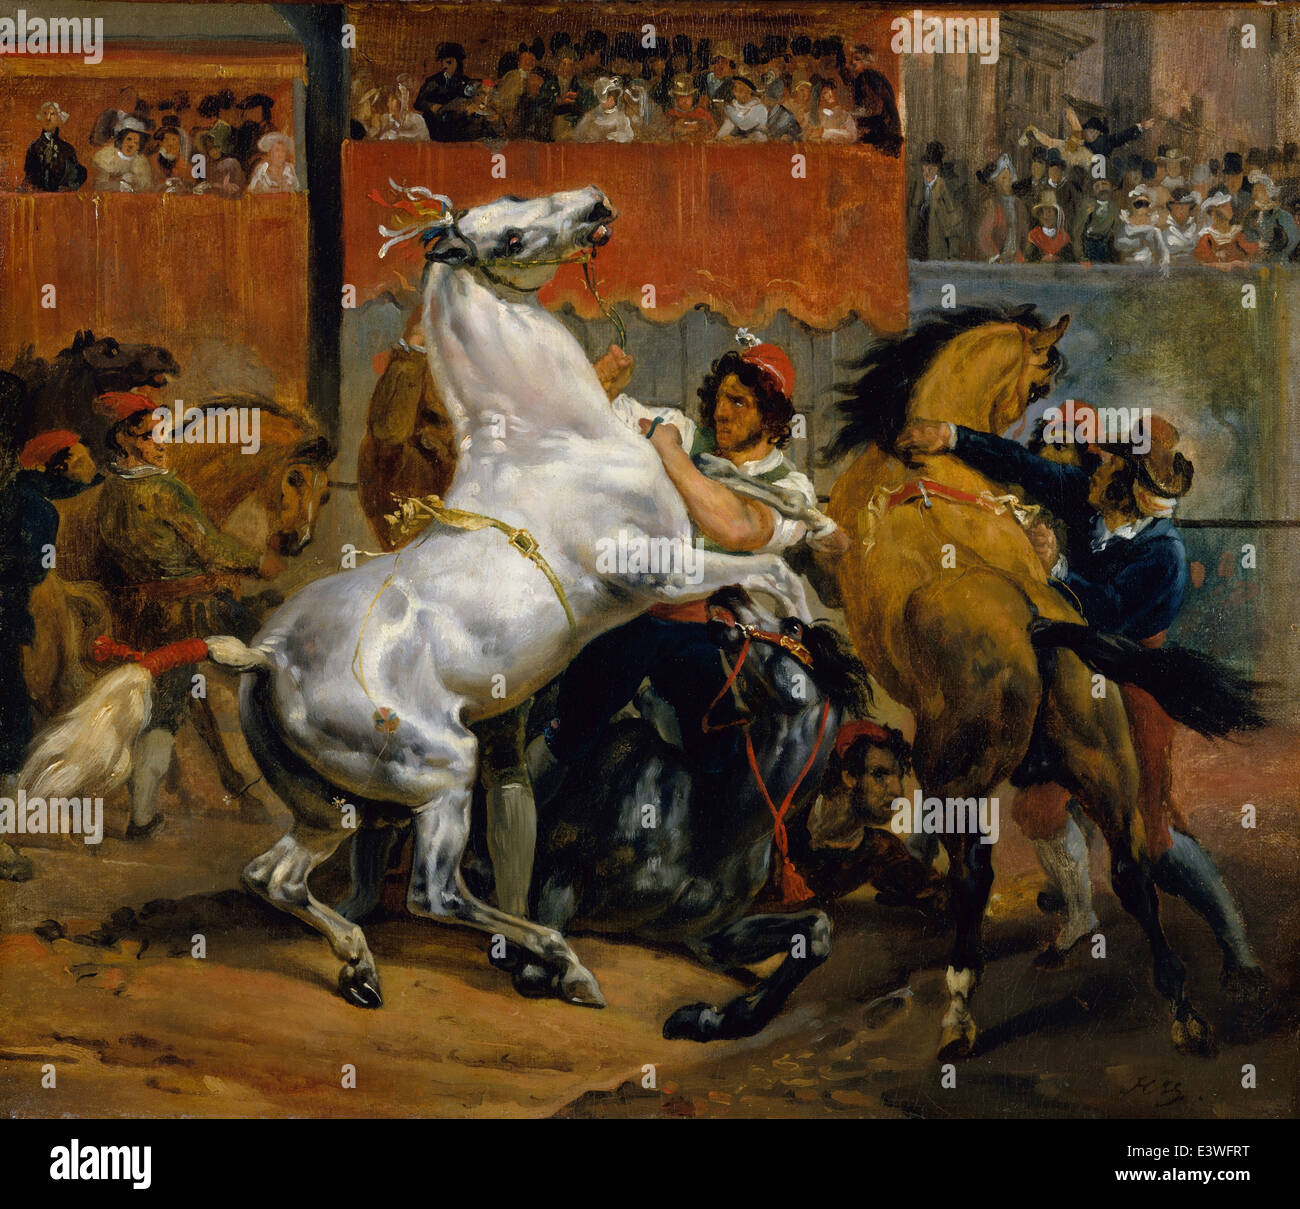 Horace Vernet - The Start of the Race of the Riderless Horses - 1820 - MET Museum - New-York - Stock Image